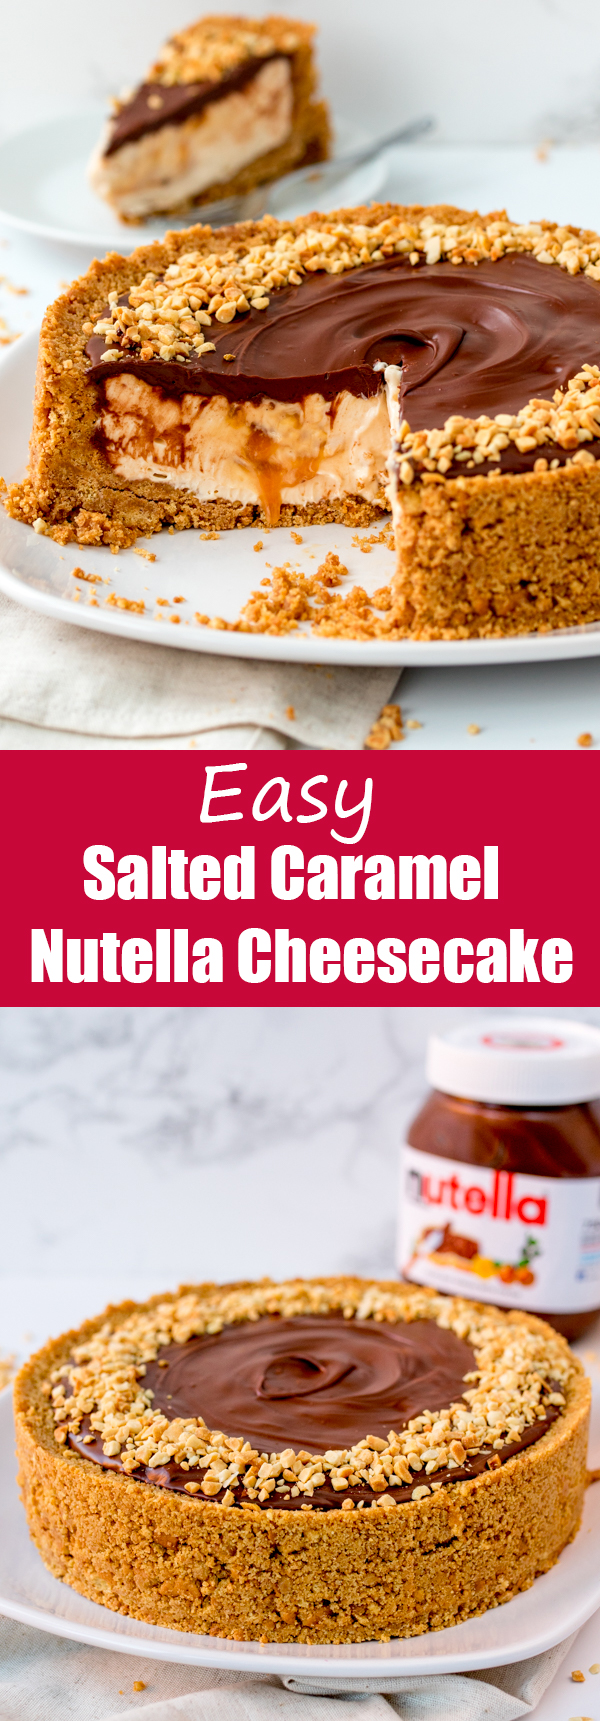 easy nutella salted caramel cheesecake pin